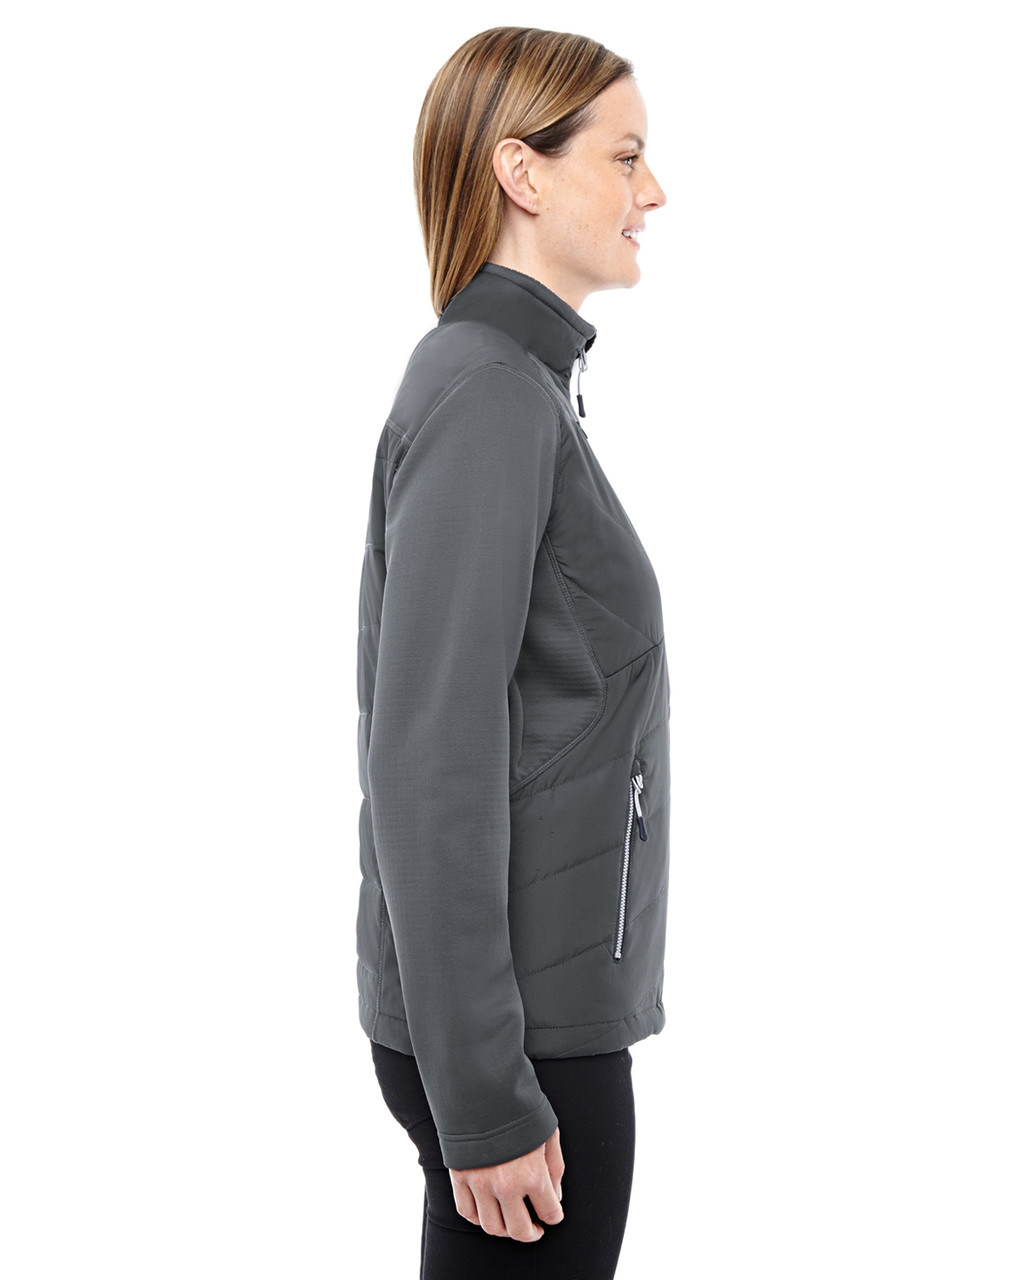 Carbon-side 78809 North End Sport Red Quantum Interactive Hybrid Insulated Jacket